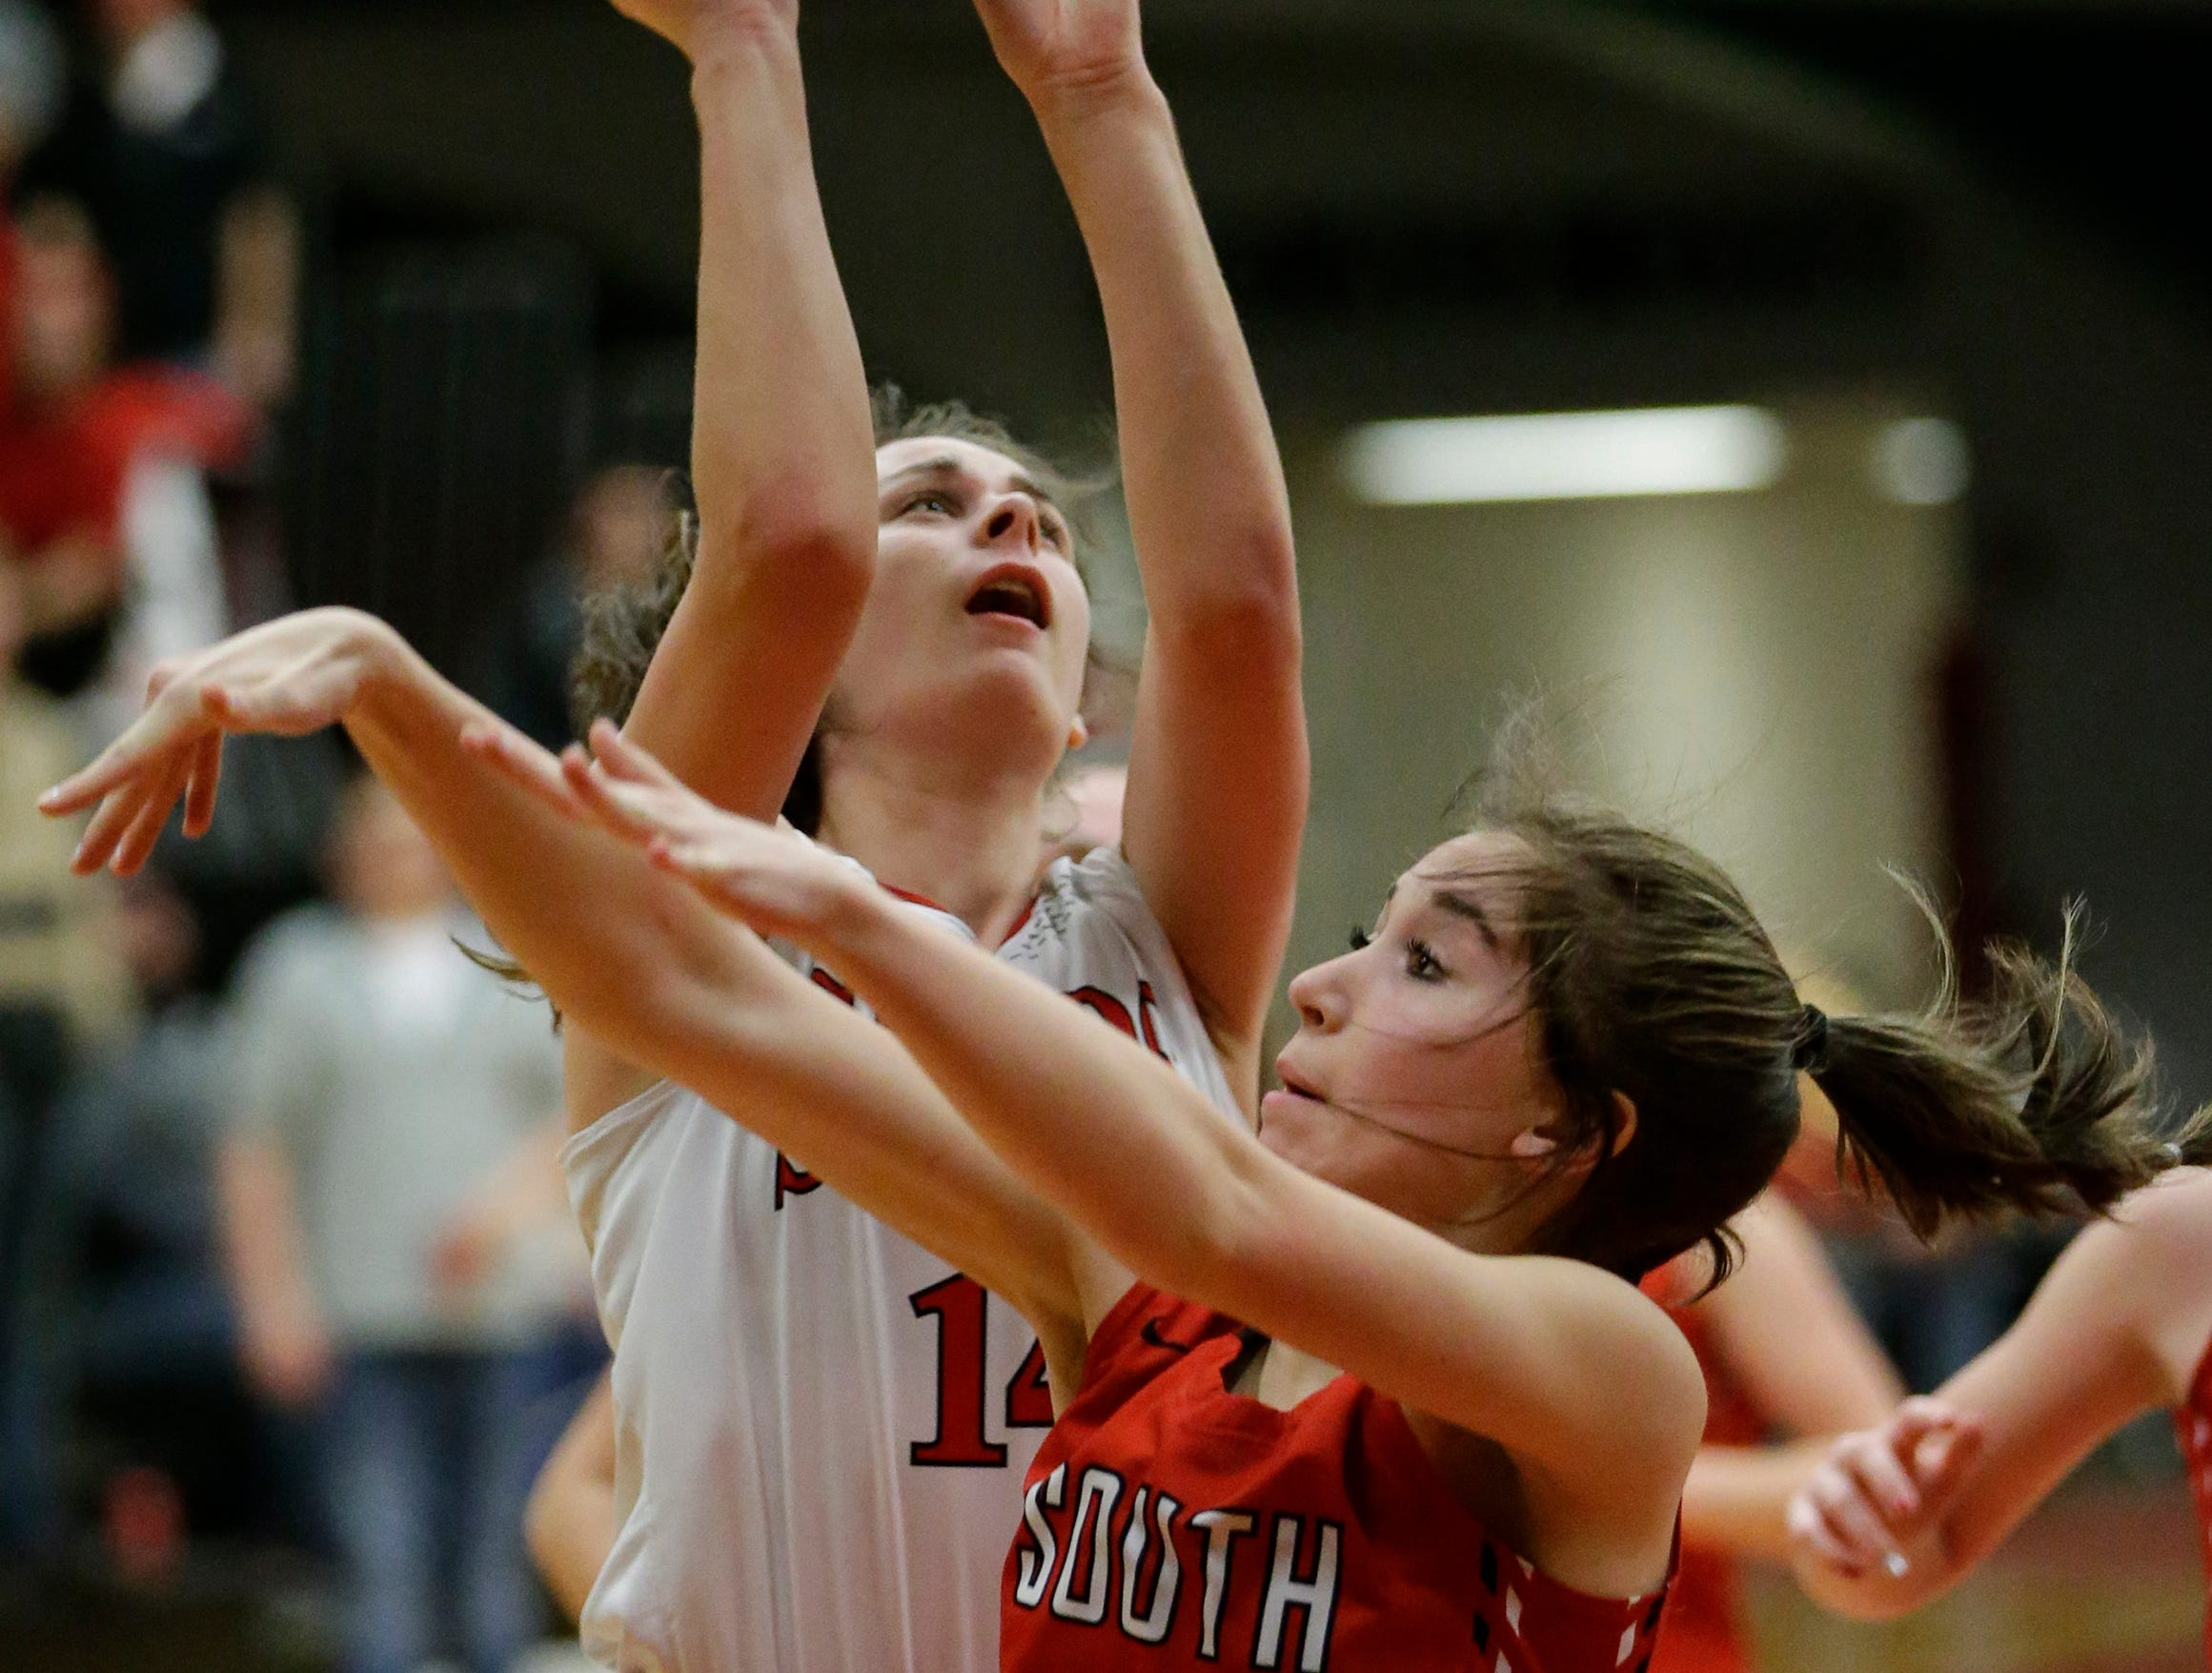 Manitowoc Lincoln's Claire Swoboda (14) drives for a layup over Sheboygan South's Kaitlyn Stricker during an FRCC matchup at Manitowoc Lincoln High School Friday, January 4, 2019, in Manitowoc, Wis. Joshua Clark/USA TODAY NETWORK-Wisconsin